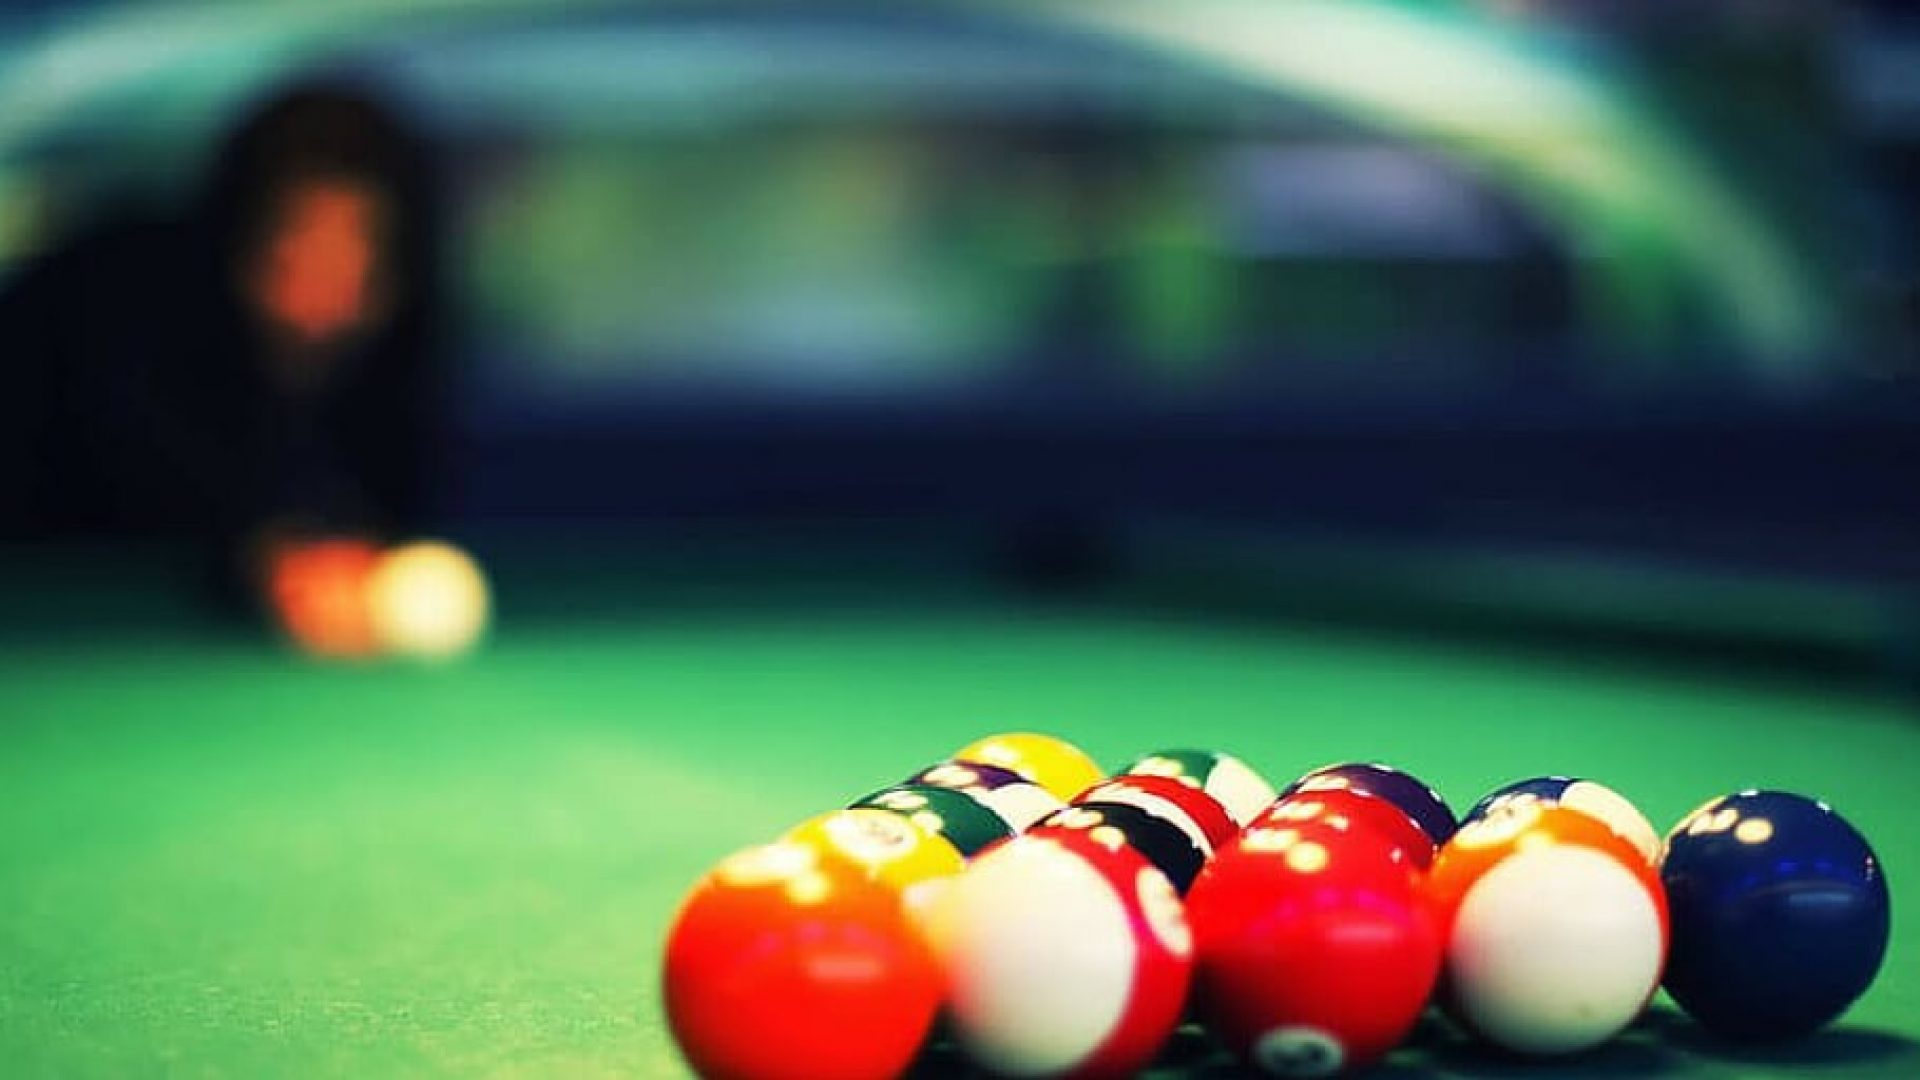 Banks Billiards